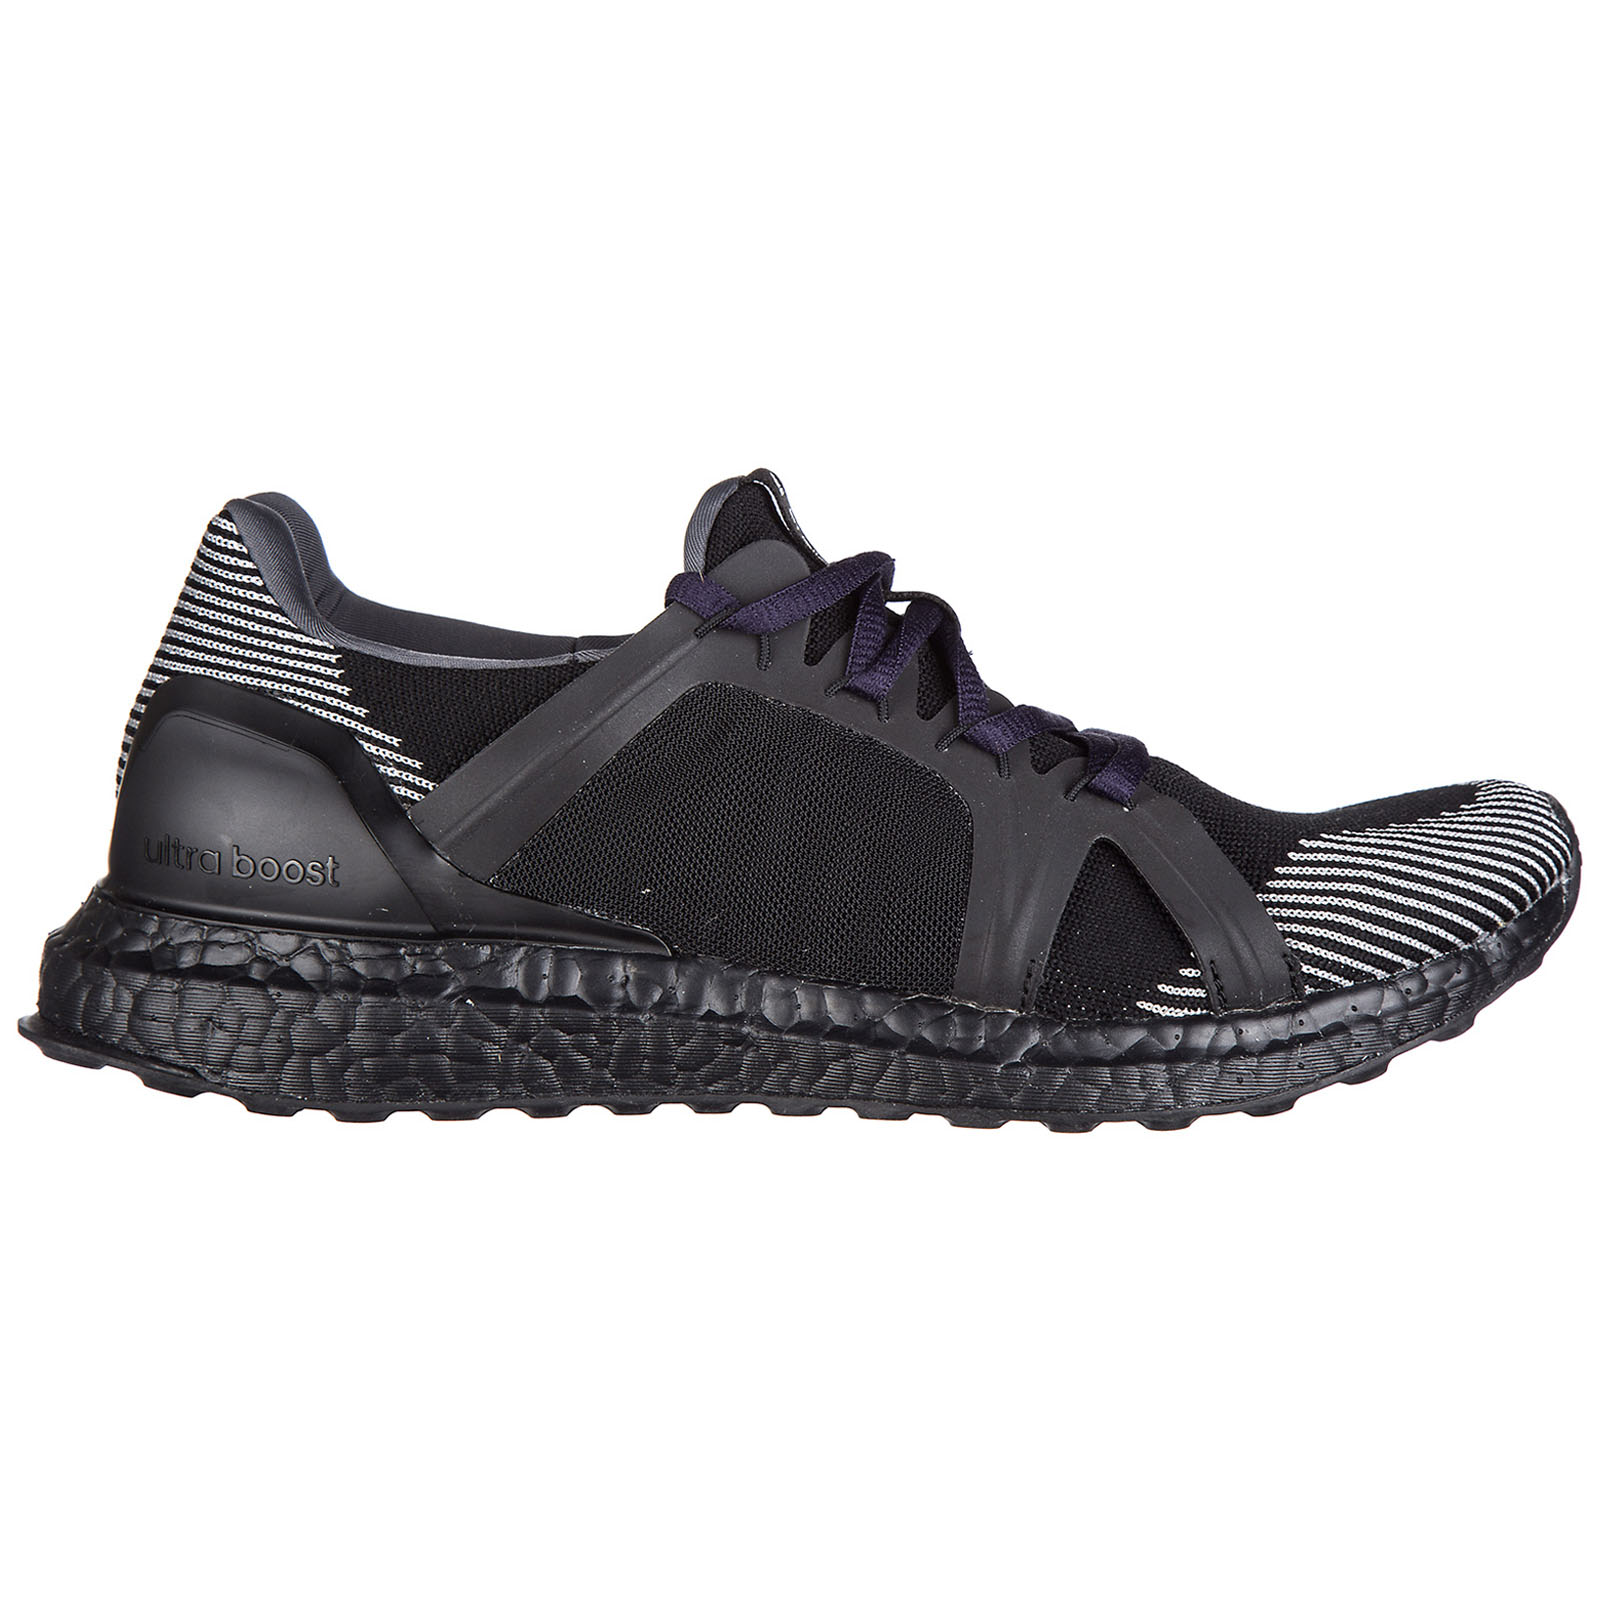 Scarpe sneakers donna  ultra boost running